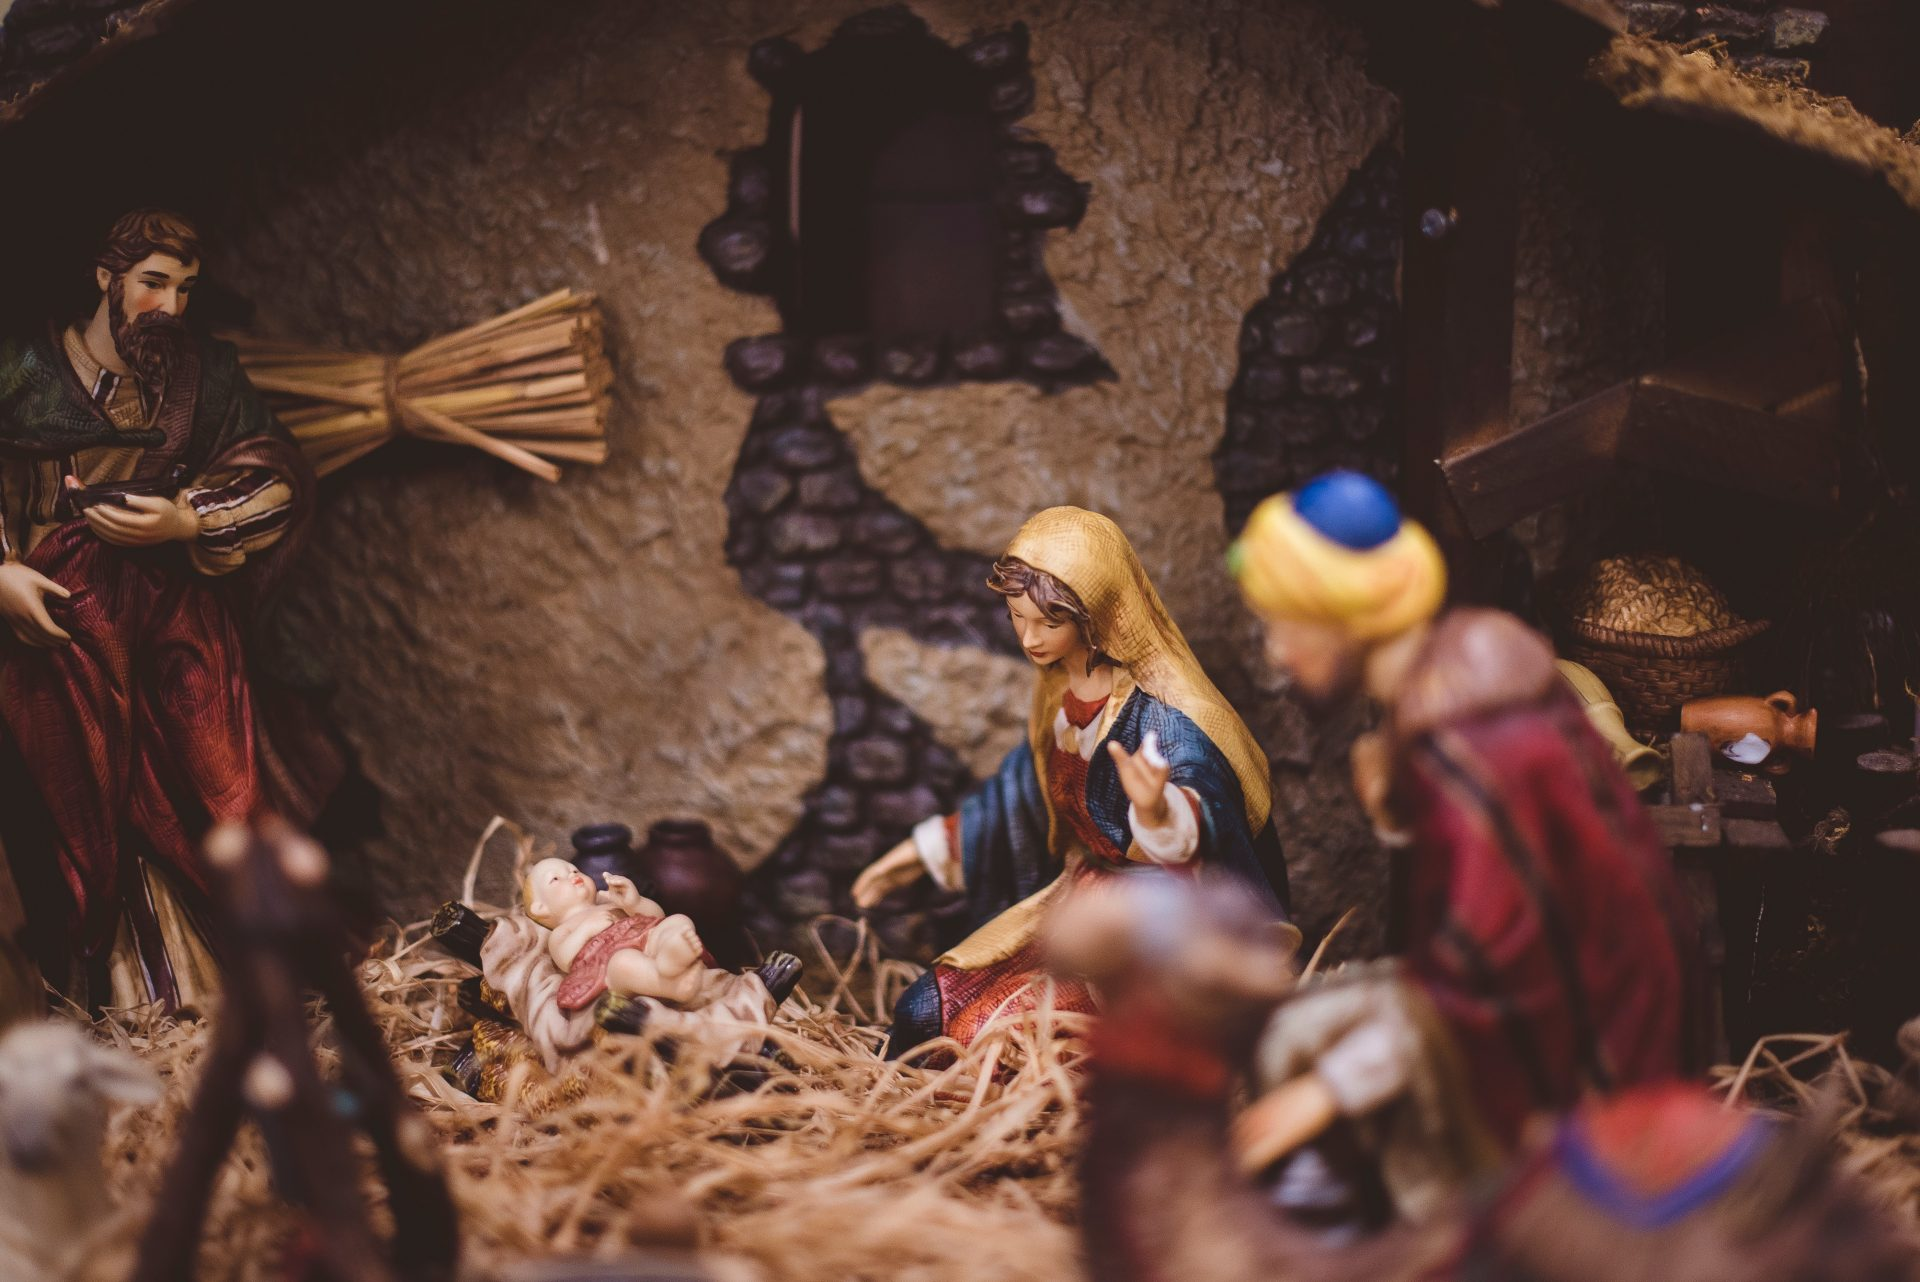 Close up view of Mary and Jesus in the nativity scene